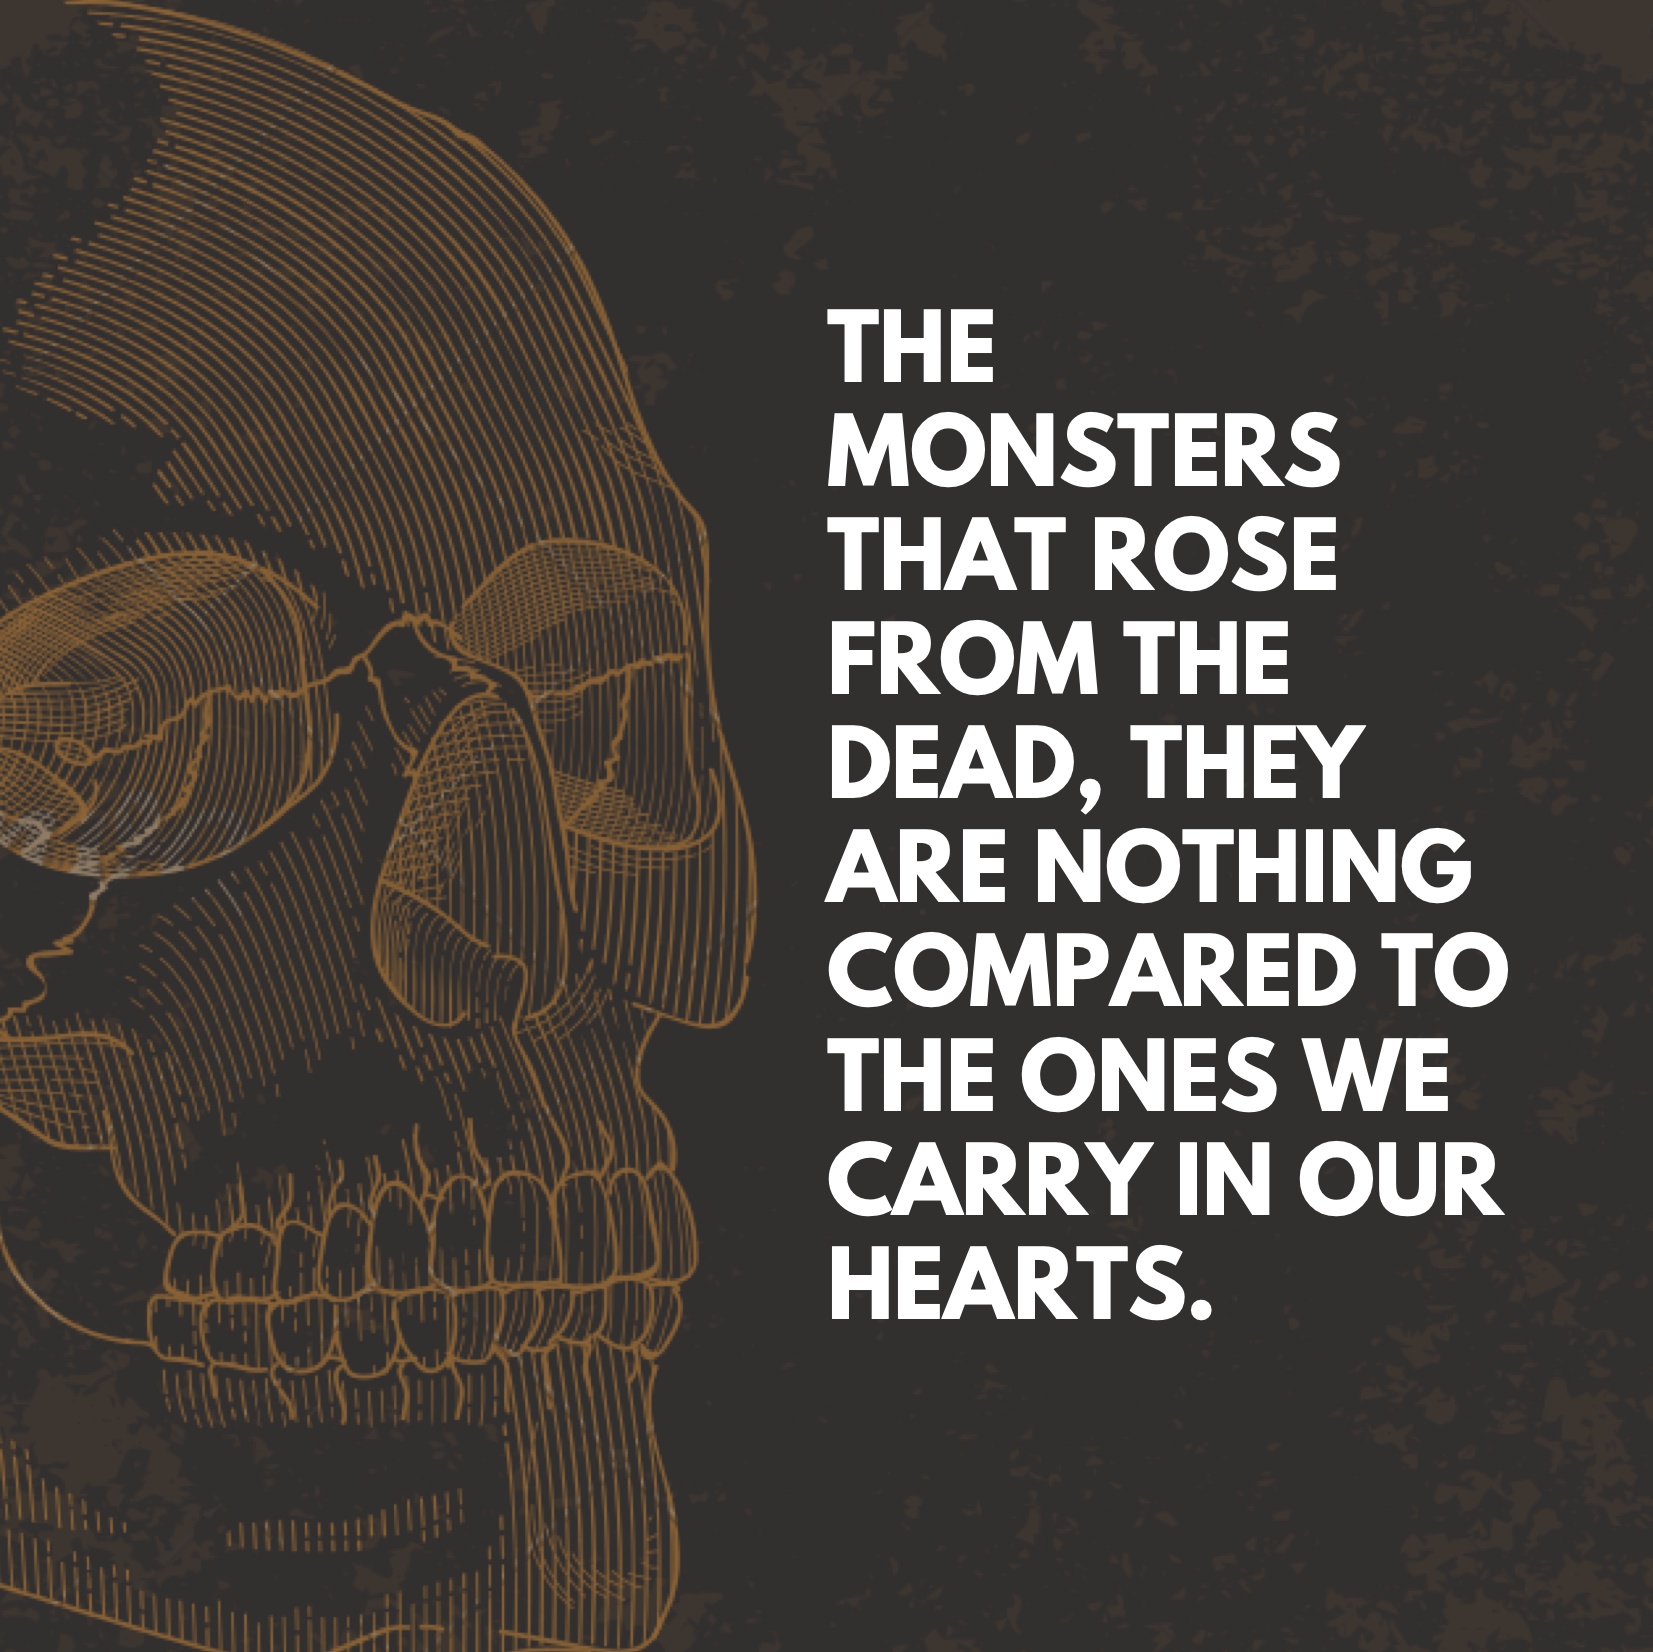 The monsters that rose from the dead, they are nothing compared to the ones we carry in our hearts.